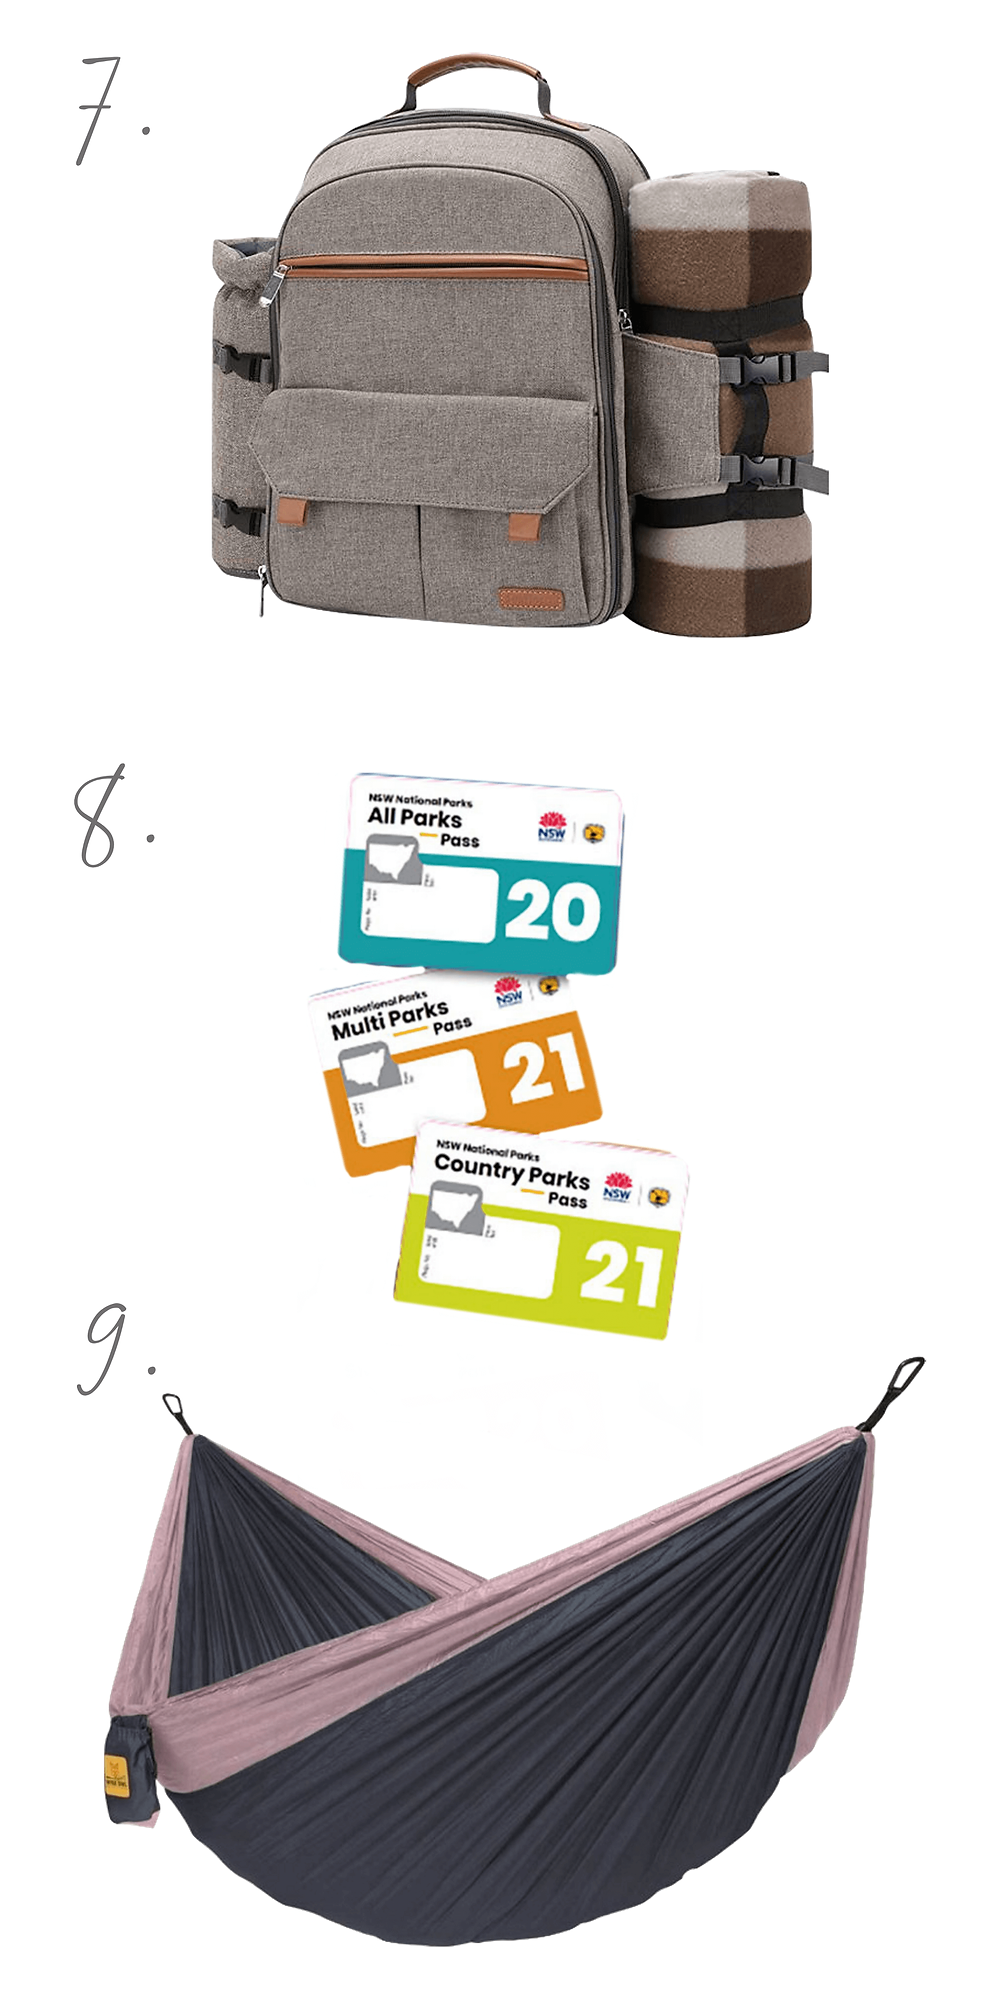 Cut out images of gifts: a brown backpack with a brown and cream picnic rug attached to the side, a set of cards depicting national park passes, a grey and blush pink hammock